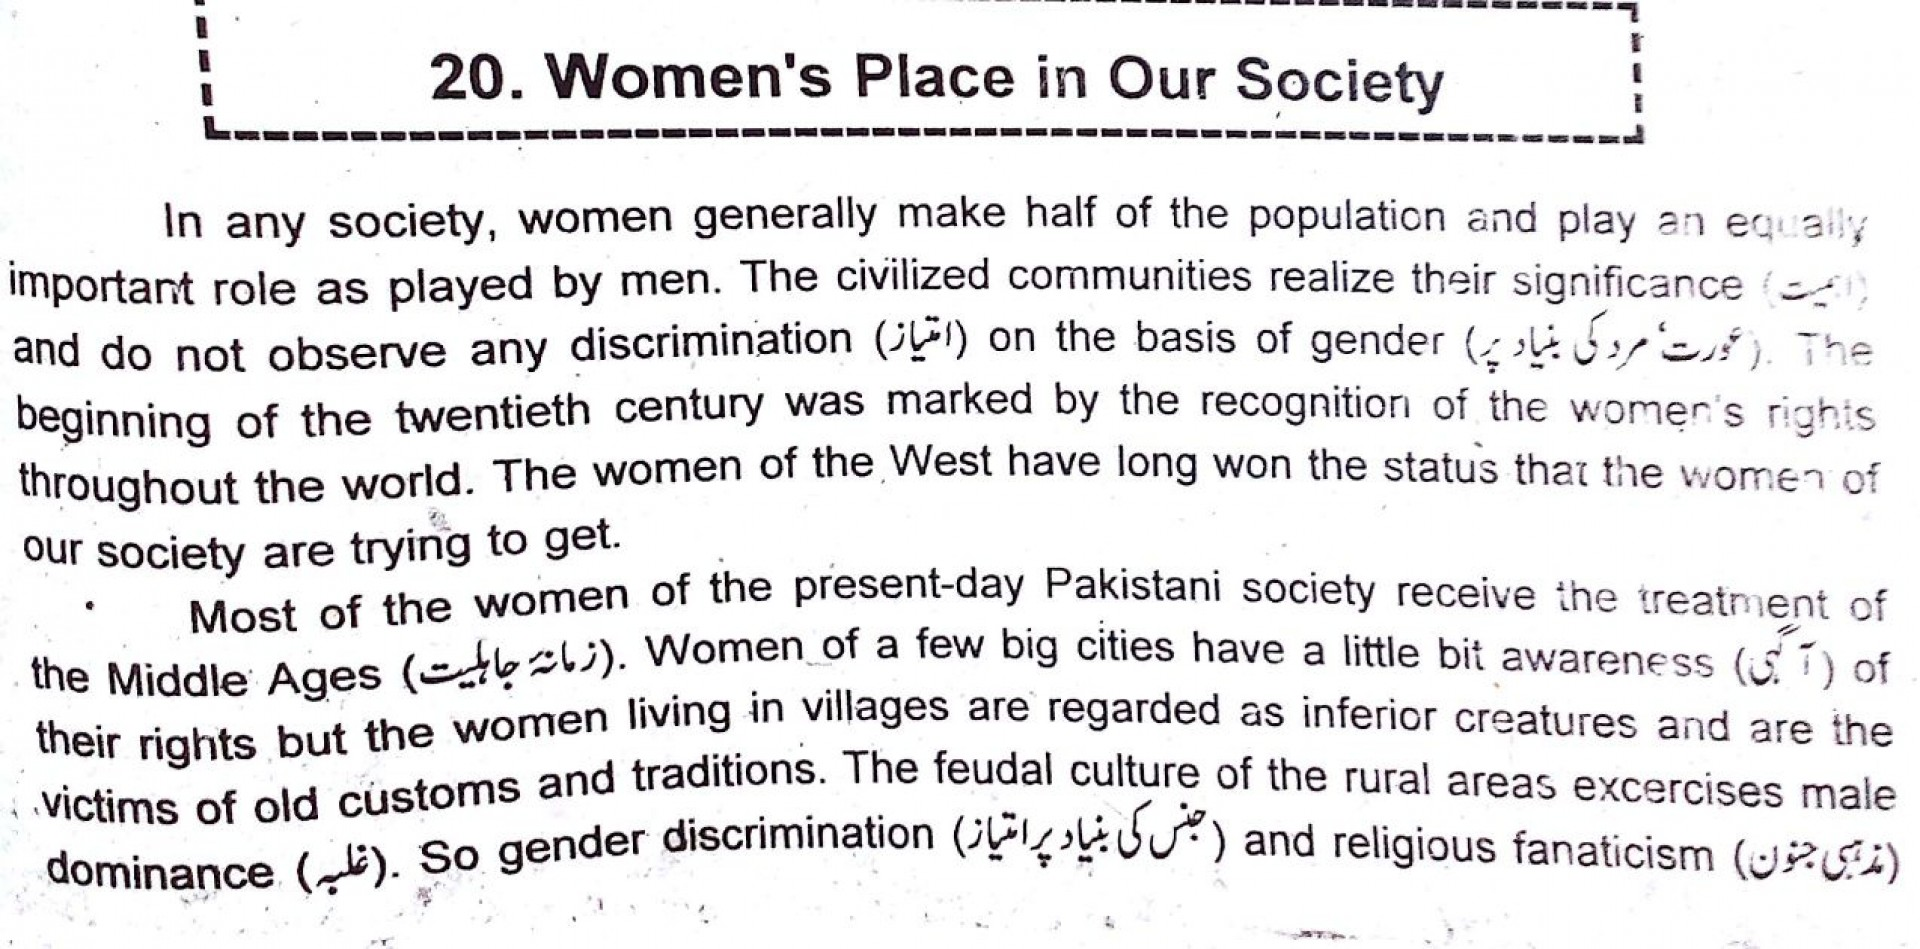 007 Essay Example Woman2bplace2bin2bour2bsociety2b252812529 Womens Archaicawful Rights Women's Movement Questions In Tamil 1920